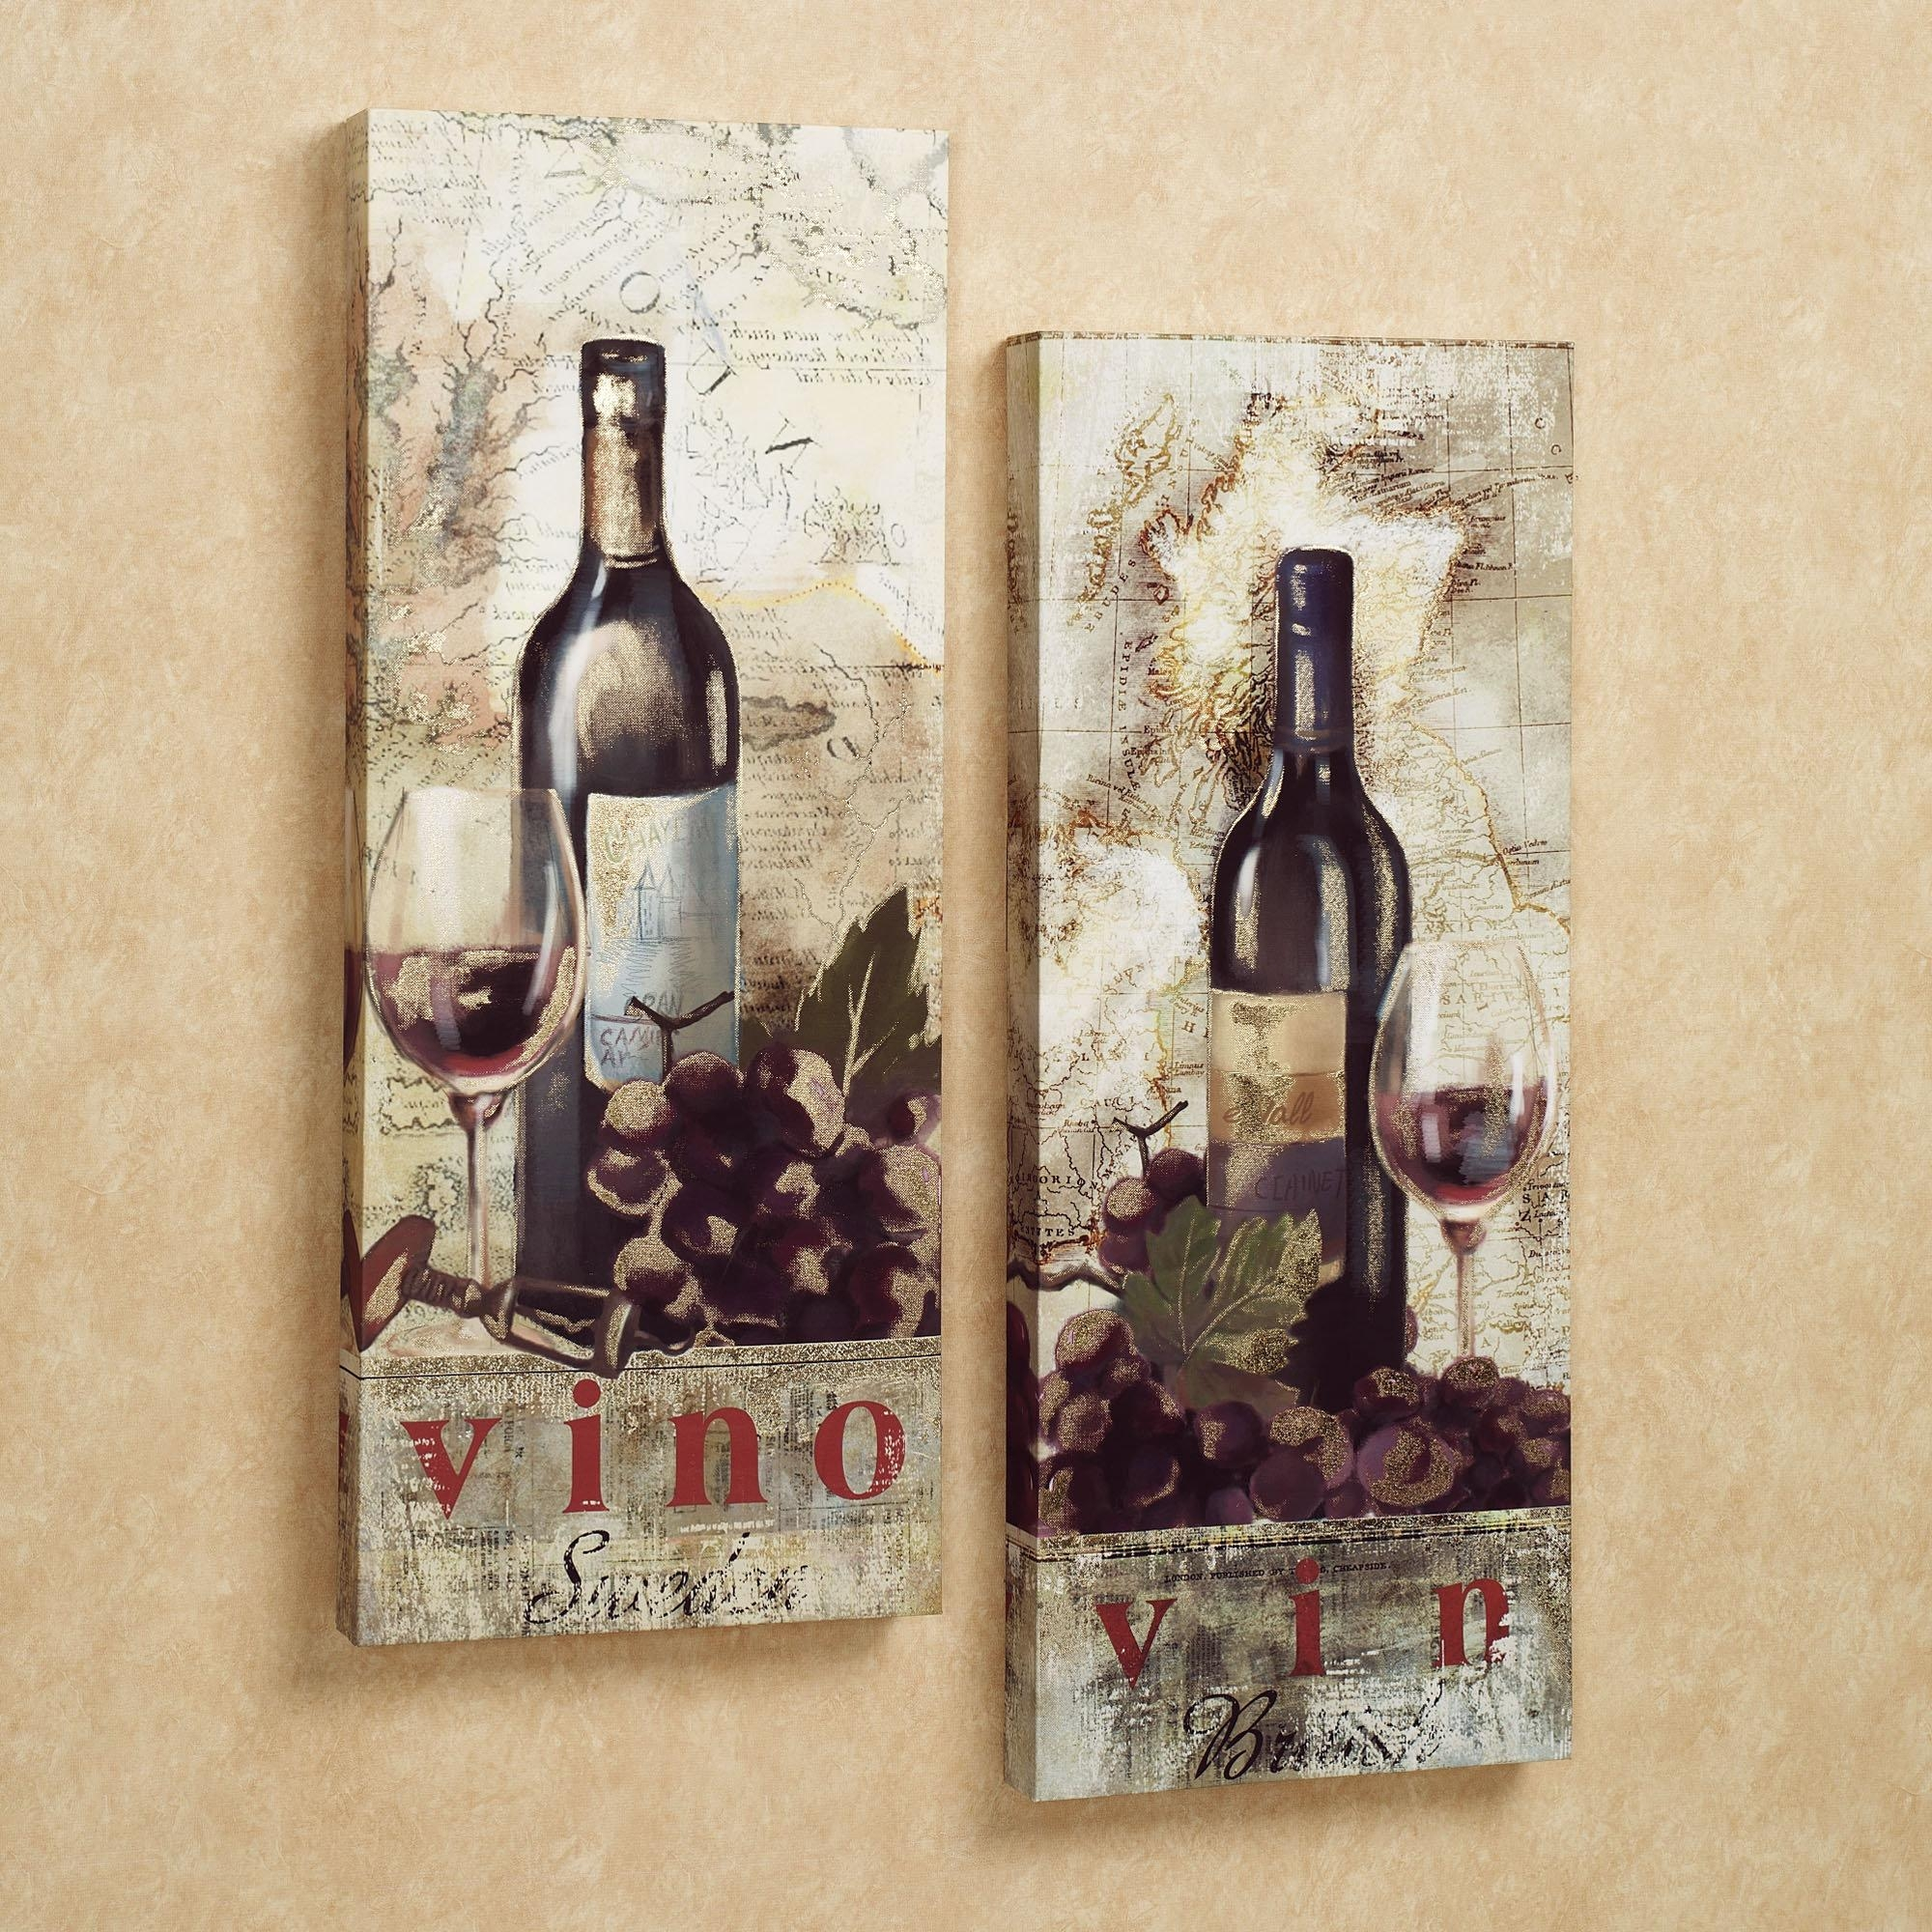 Wine Wall Decor Poster Inspirations With Kitchen Sets Images Throughout Grape Wall Art (Image 19 of 20)